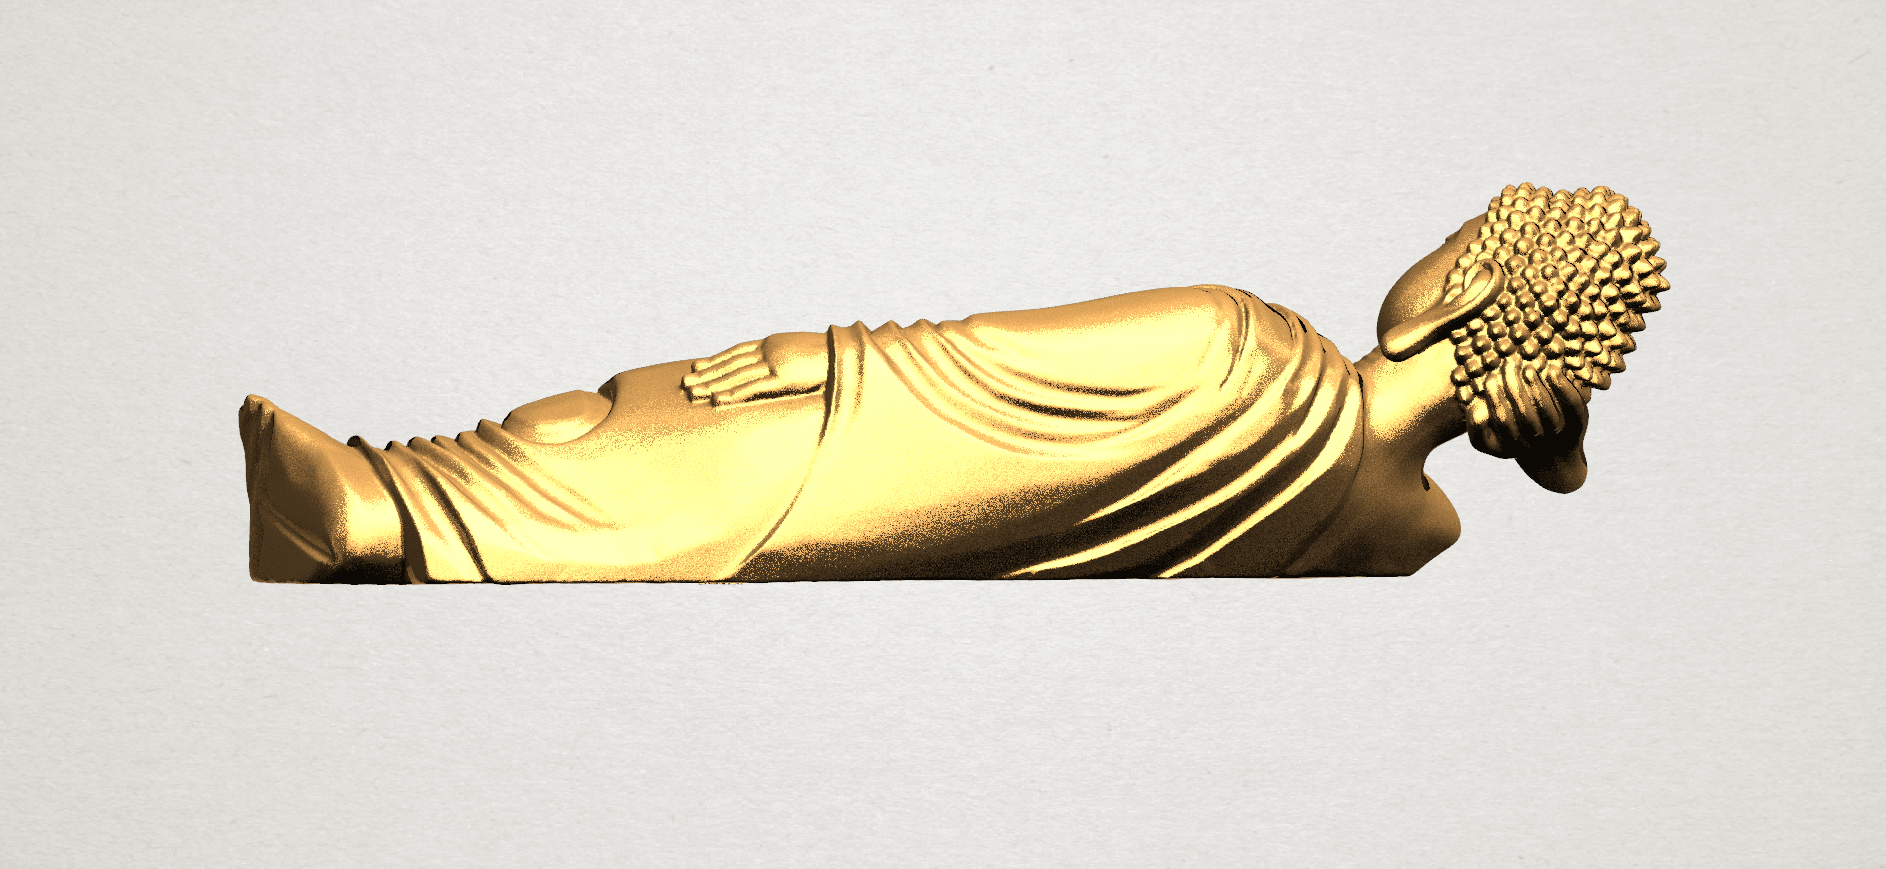 Sleeping Buddha (ii) A05.png Download free STL file Sleeping Buddha 02 • Design to 3D print, GeorgesNikkei